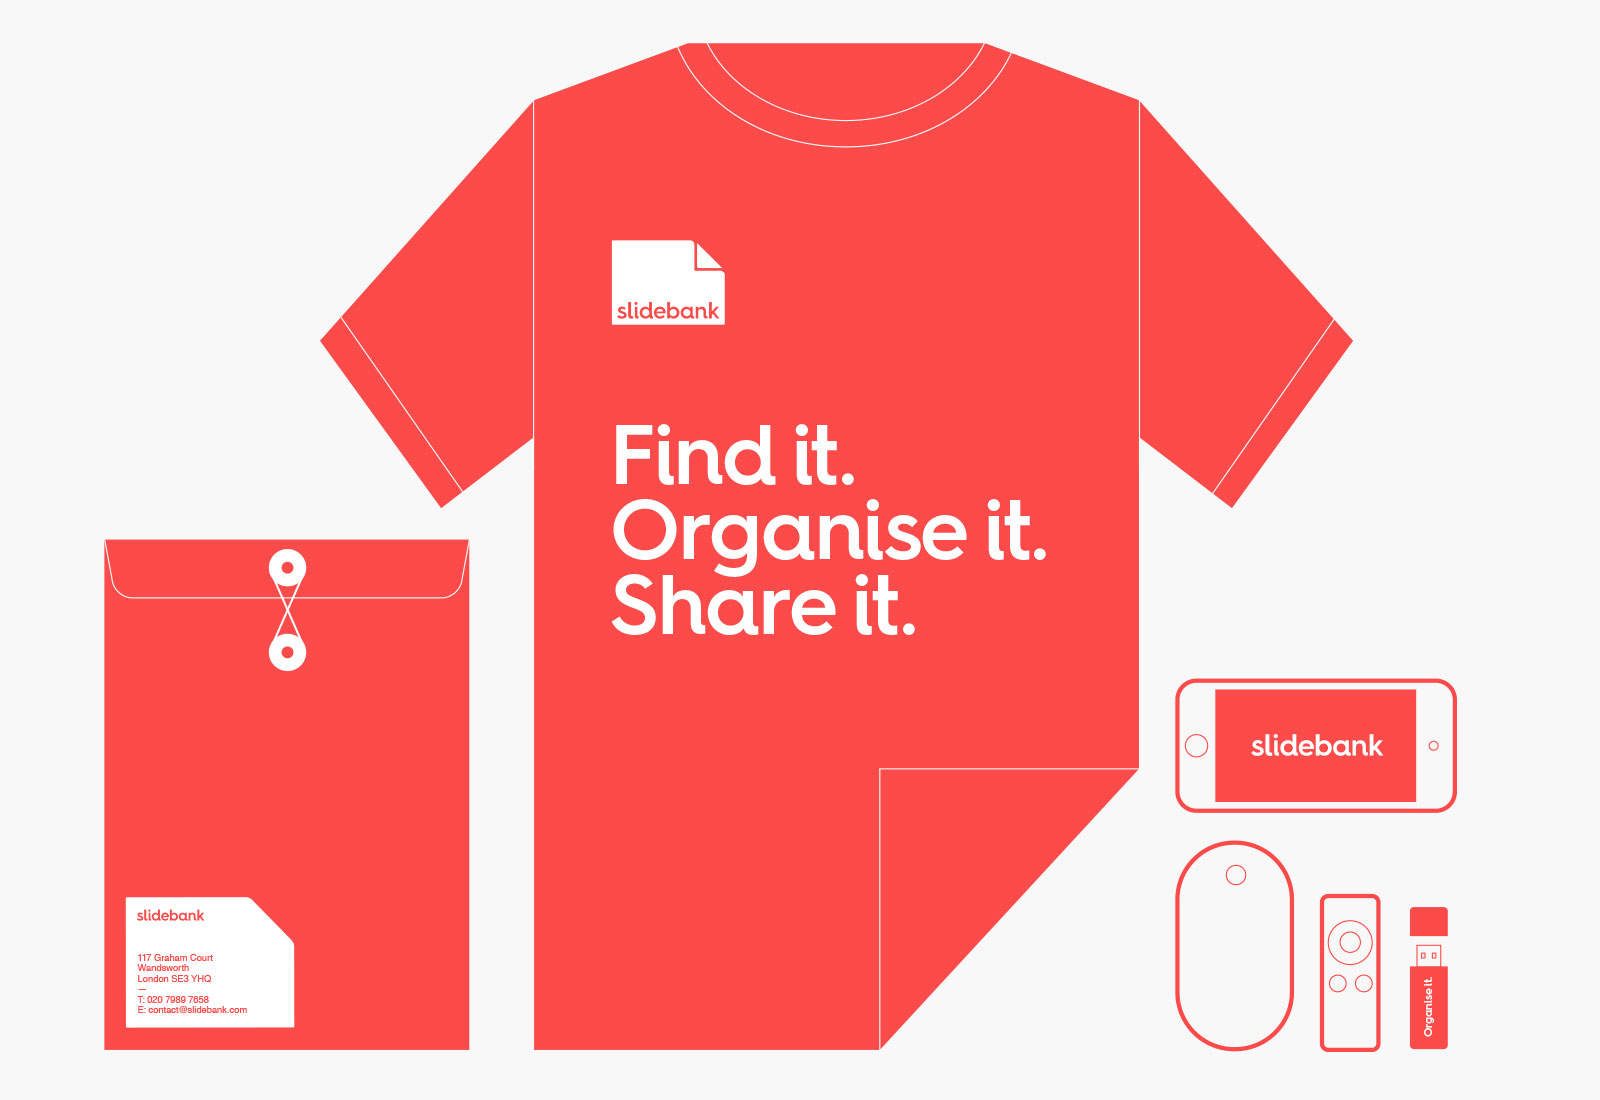 find it organize it share it